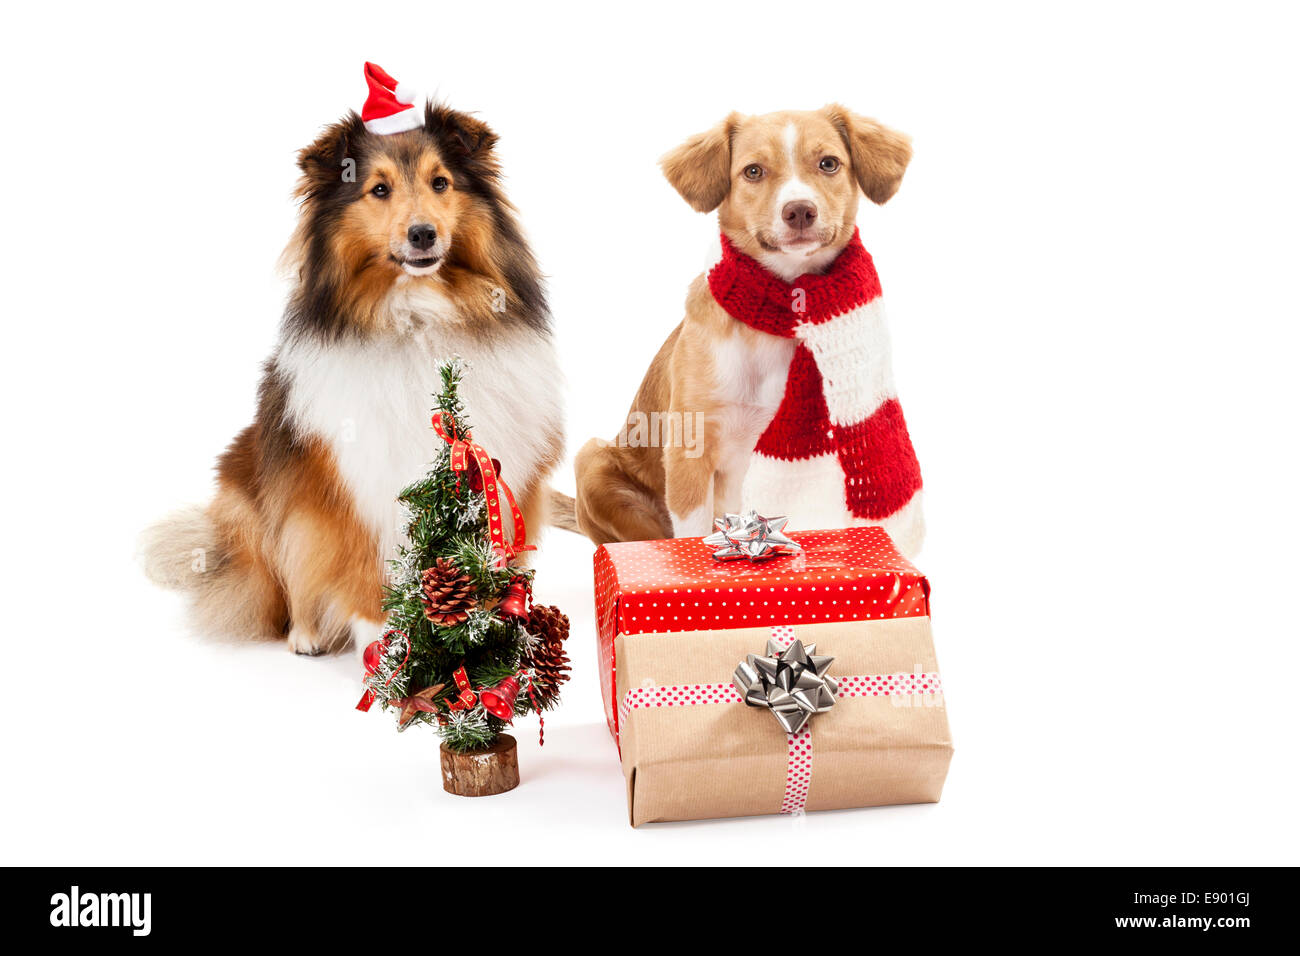 Gifts and christmas tree in front of two dogs over white background - Stock Image